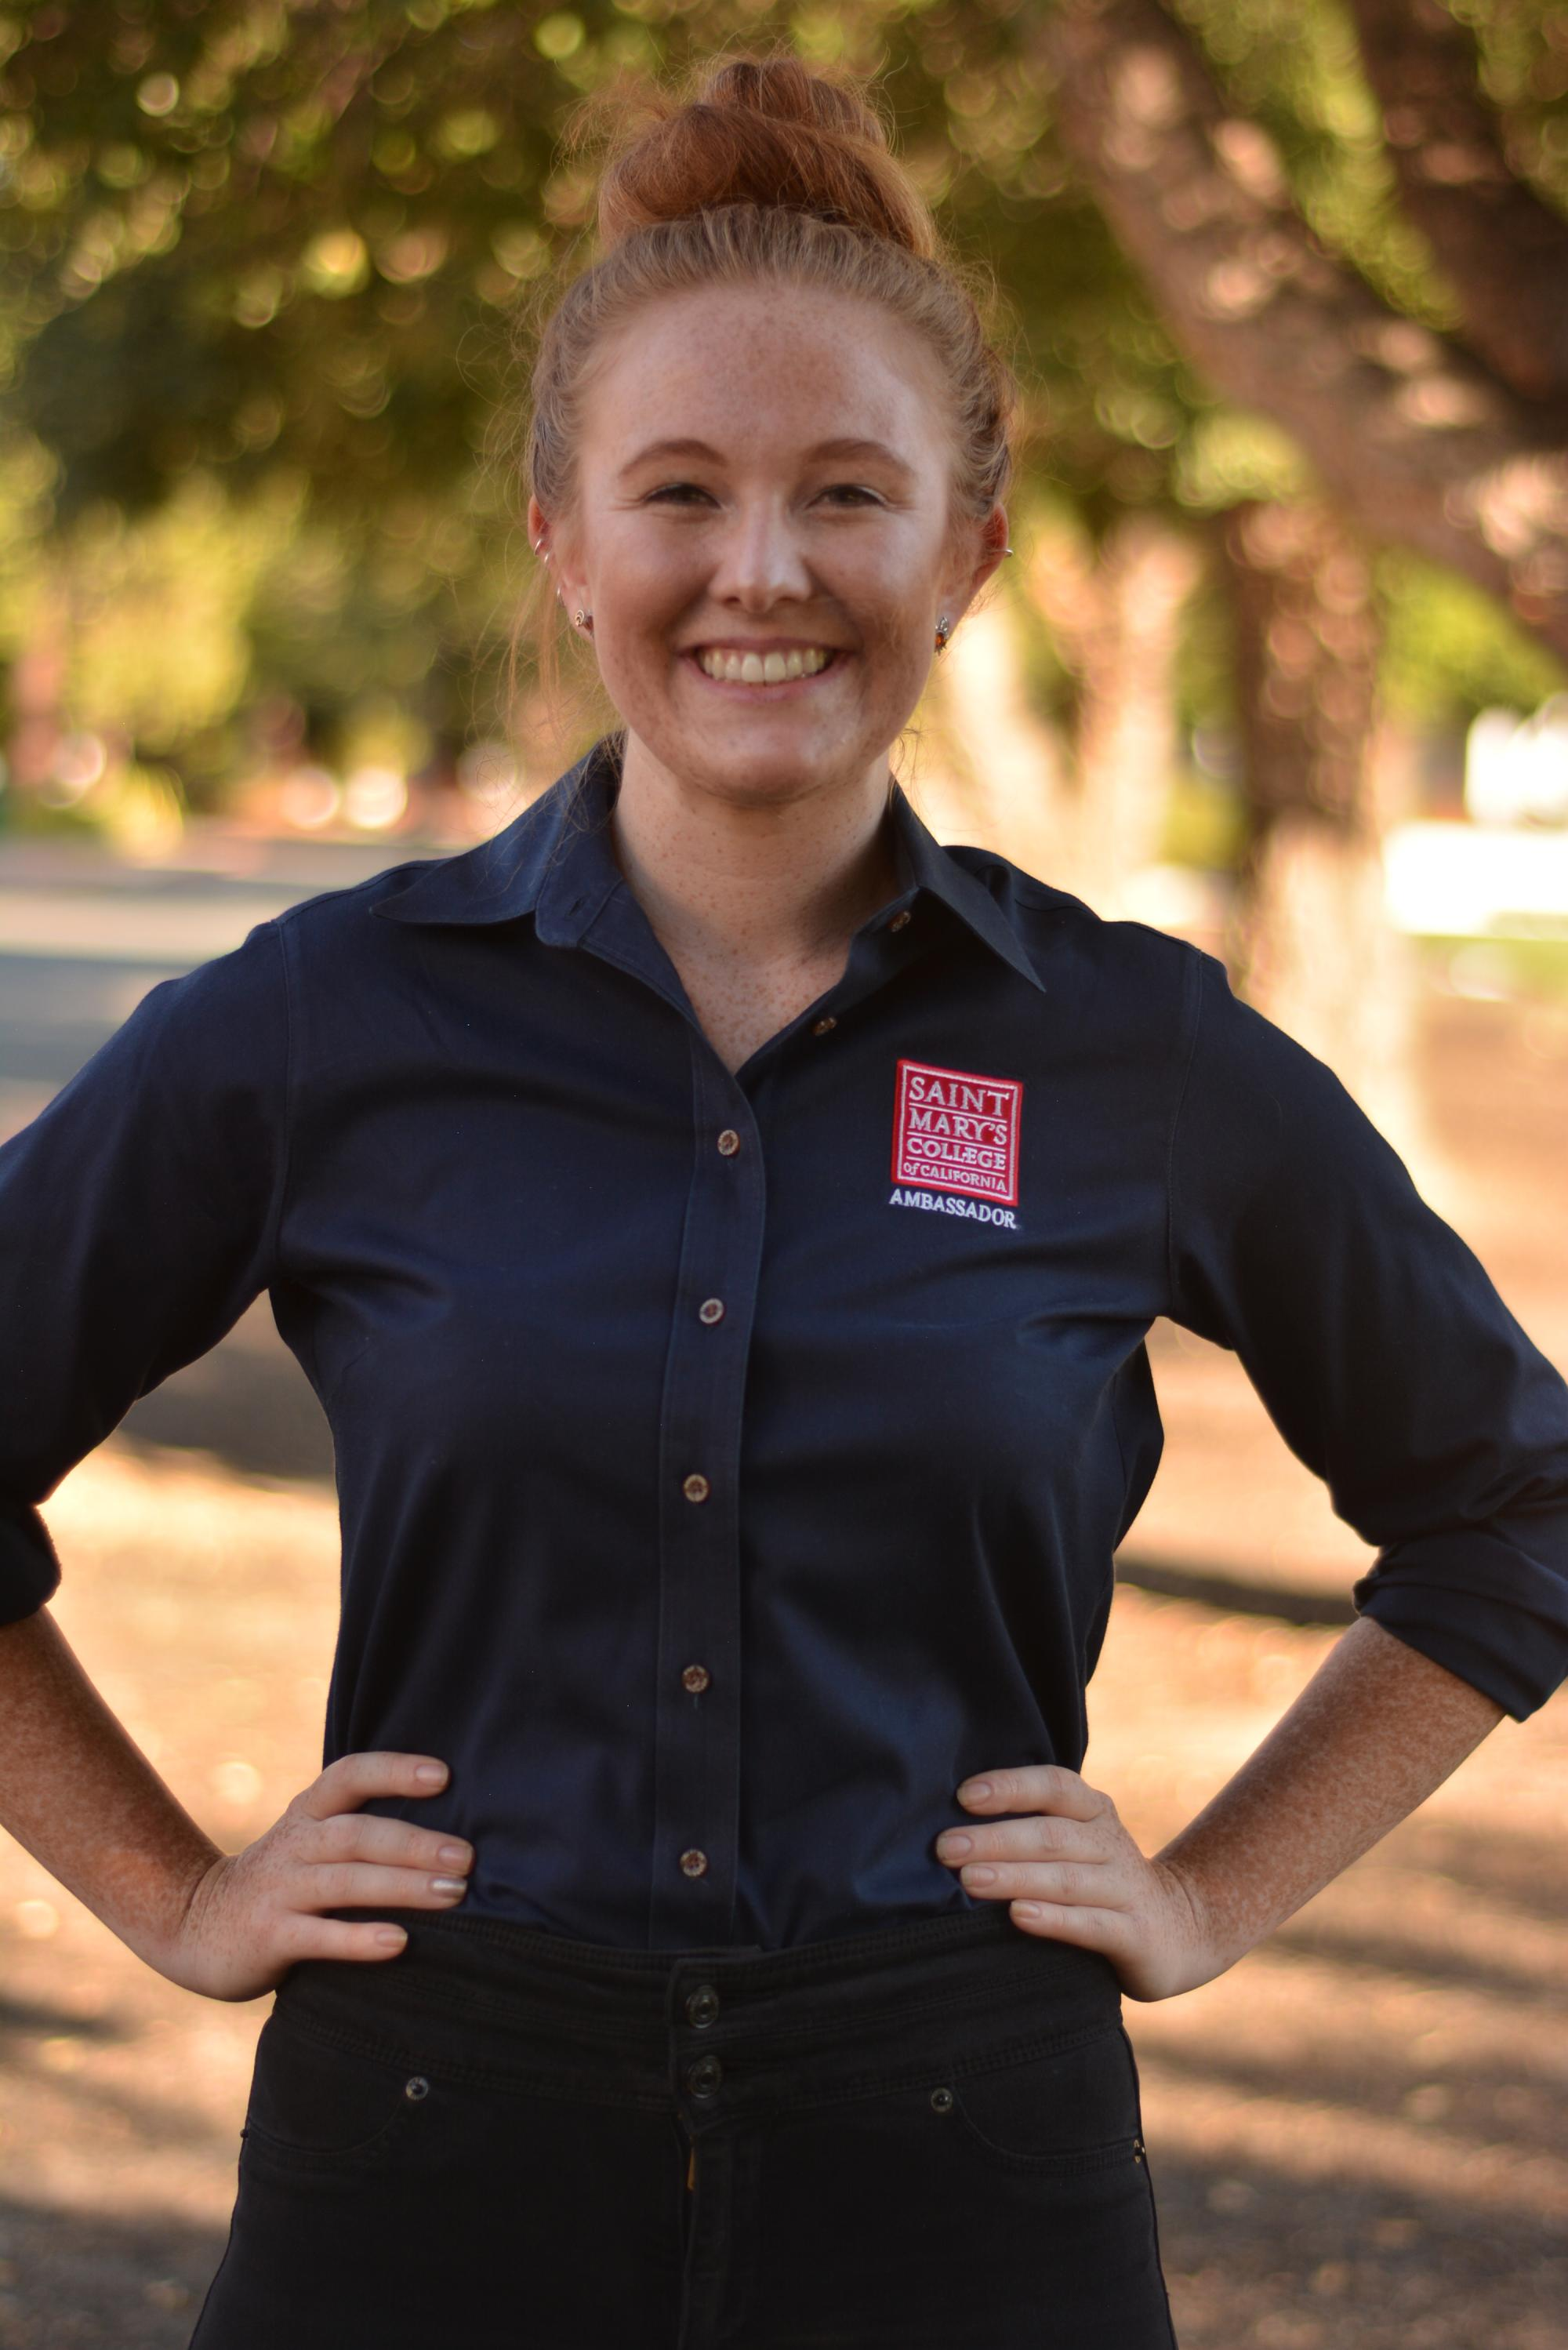 Kirsti Dunckel '19 is from Visalia, California. She is majoring in biology and a researcher for the School of Science. When not in the lab as Chemistry TA, she can be found working with fellow science majors in the St. Luke's Society.